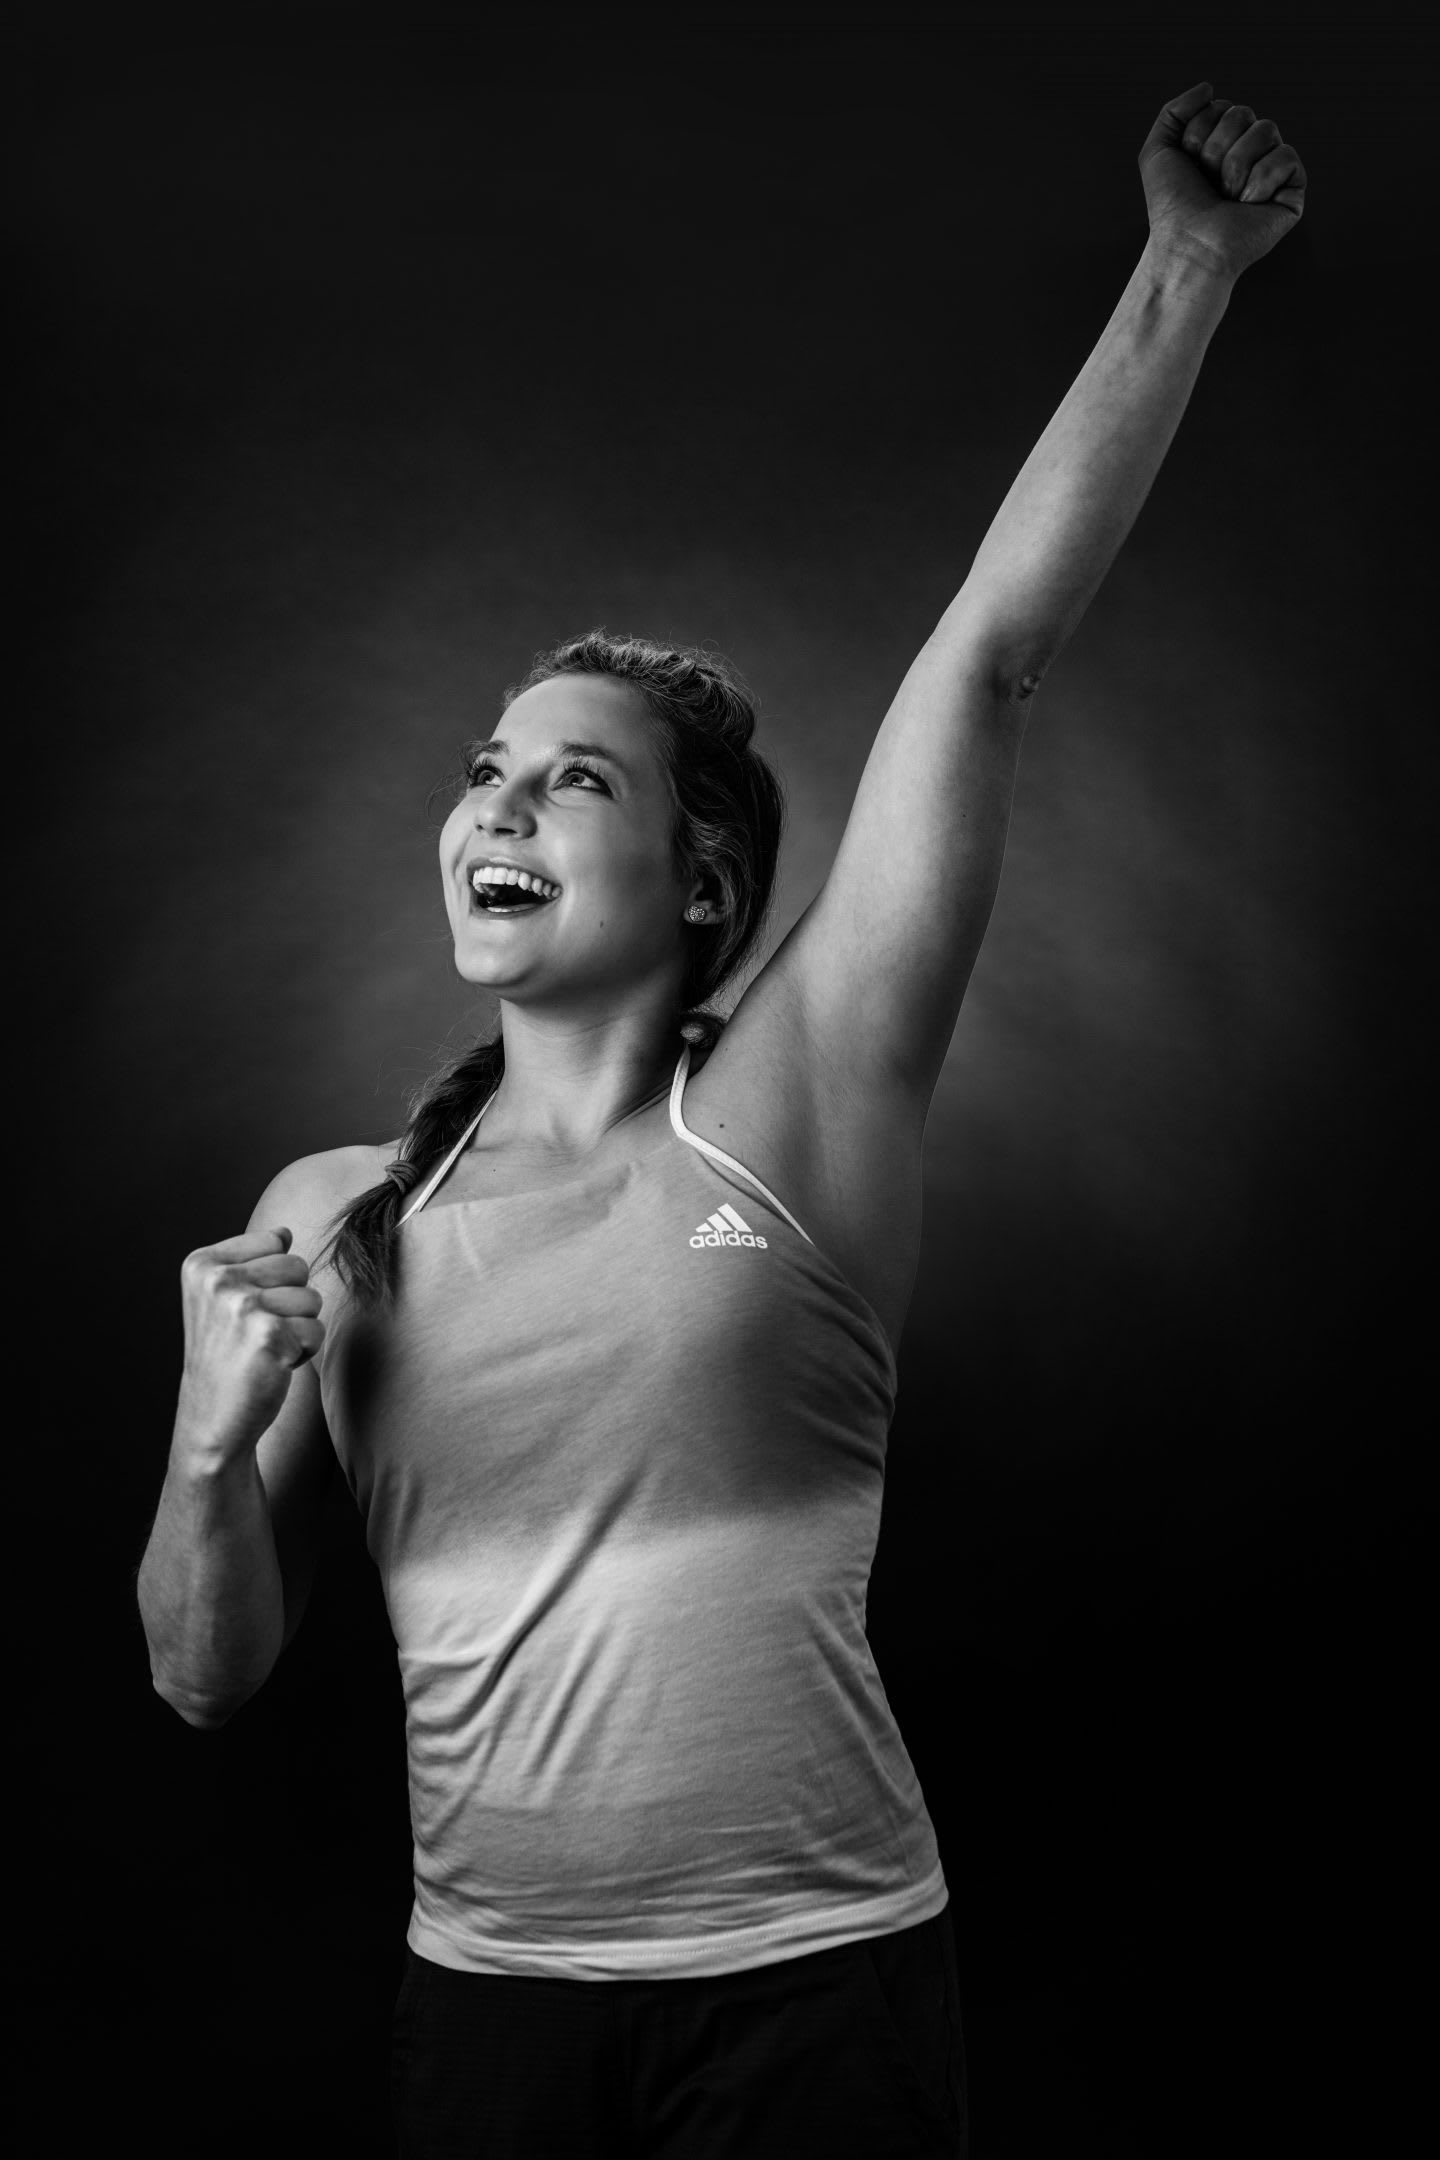 black and white photography of professional climber and adidas athlete Sasha DiGiulian doing a winning pose; Sasha-DiGiulian-climber-adidas-Terrex-Gameplan A-gesture